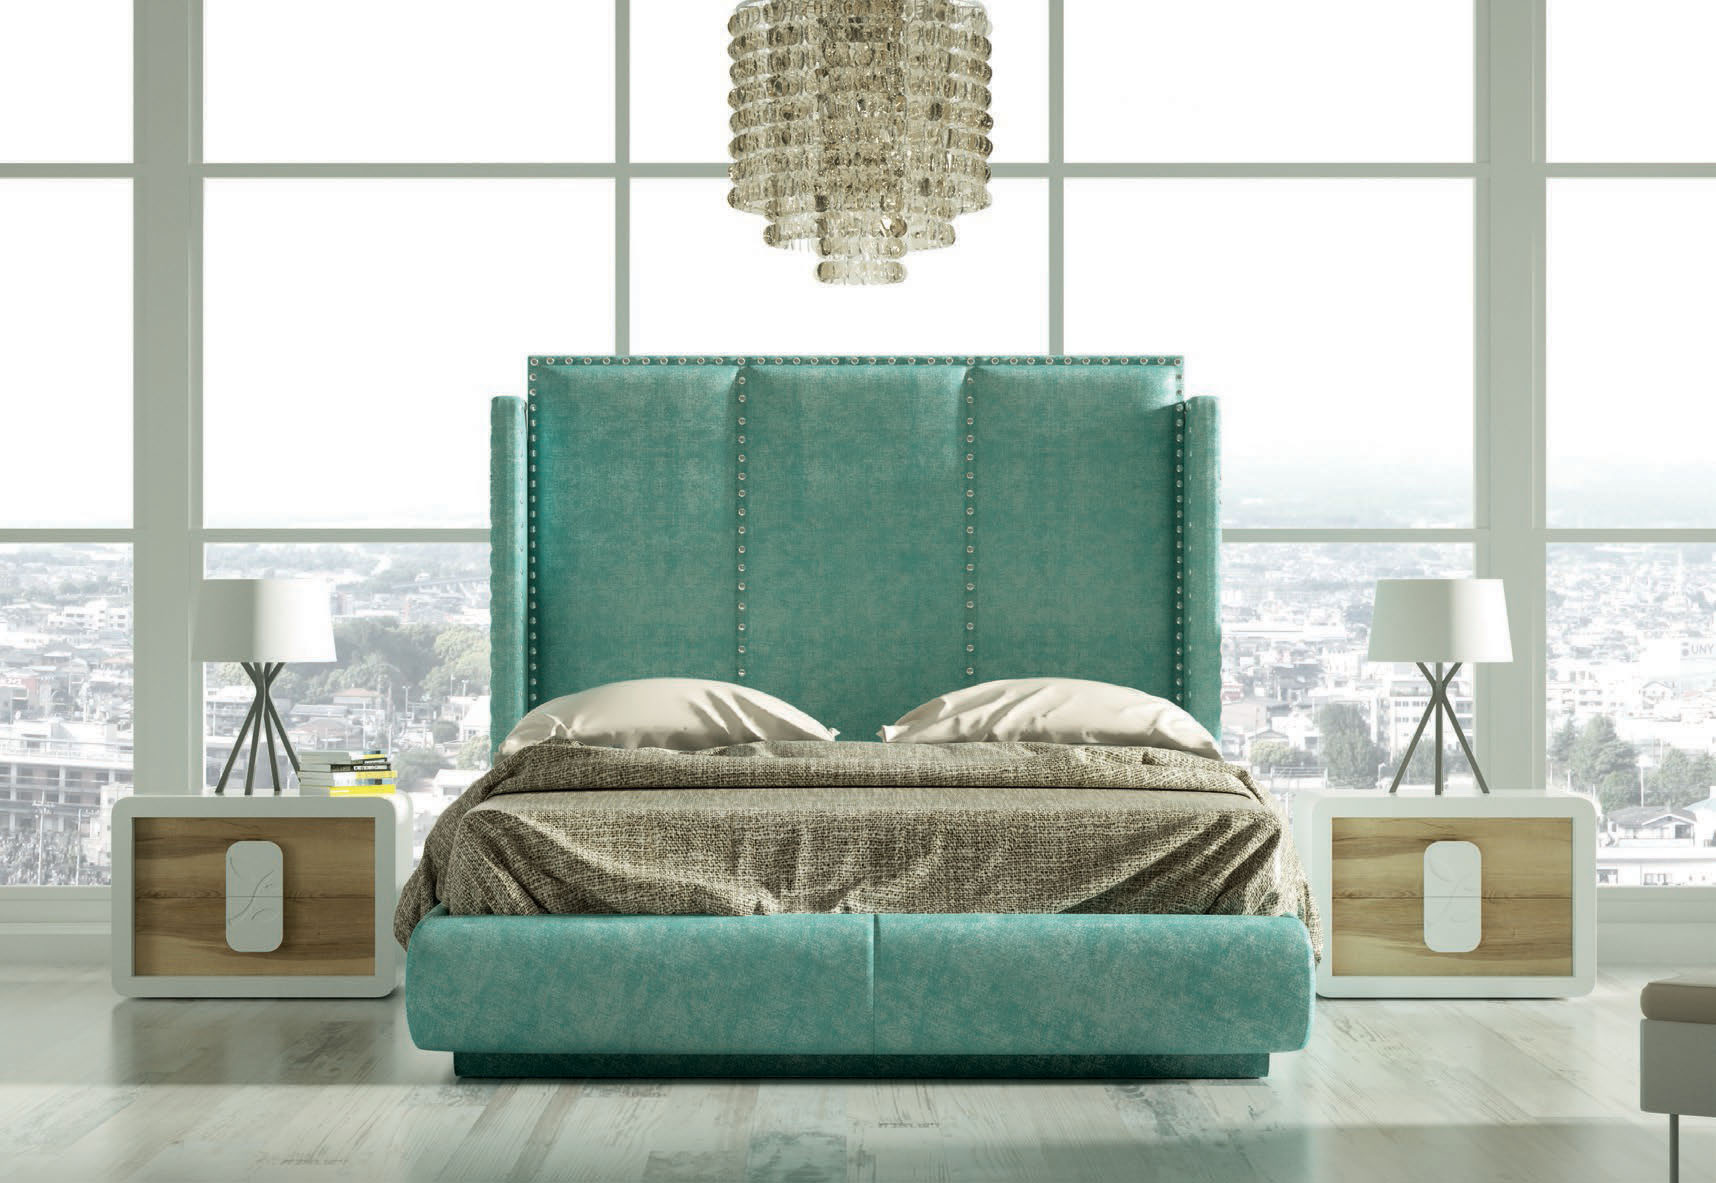 Brands Franco Furniture Bedrooms vol3, Spain DOR 168